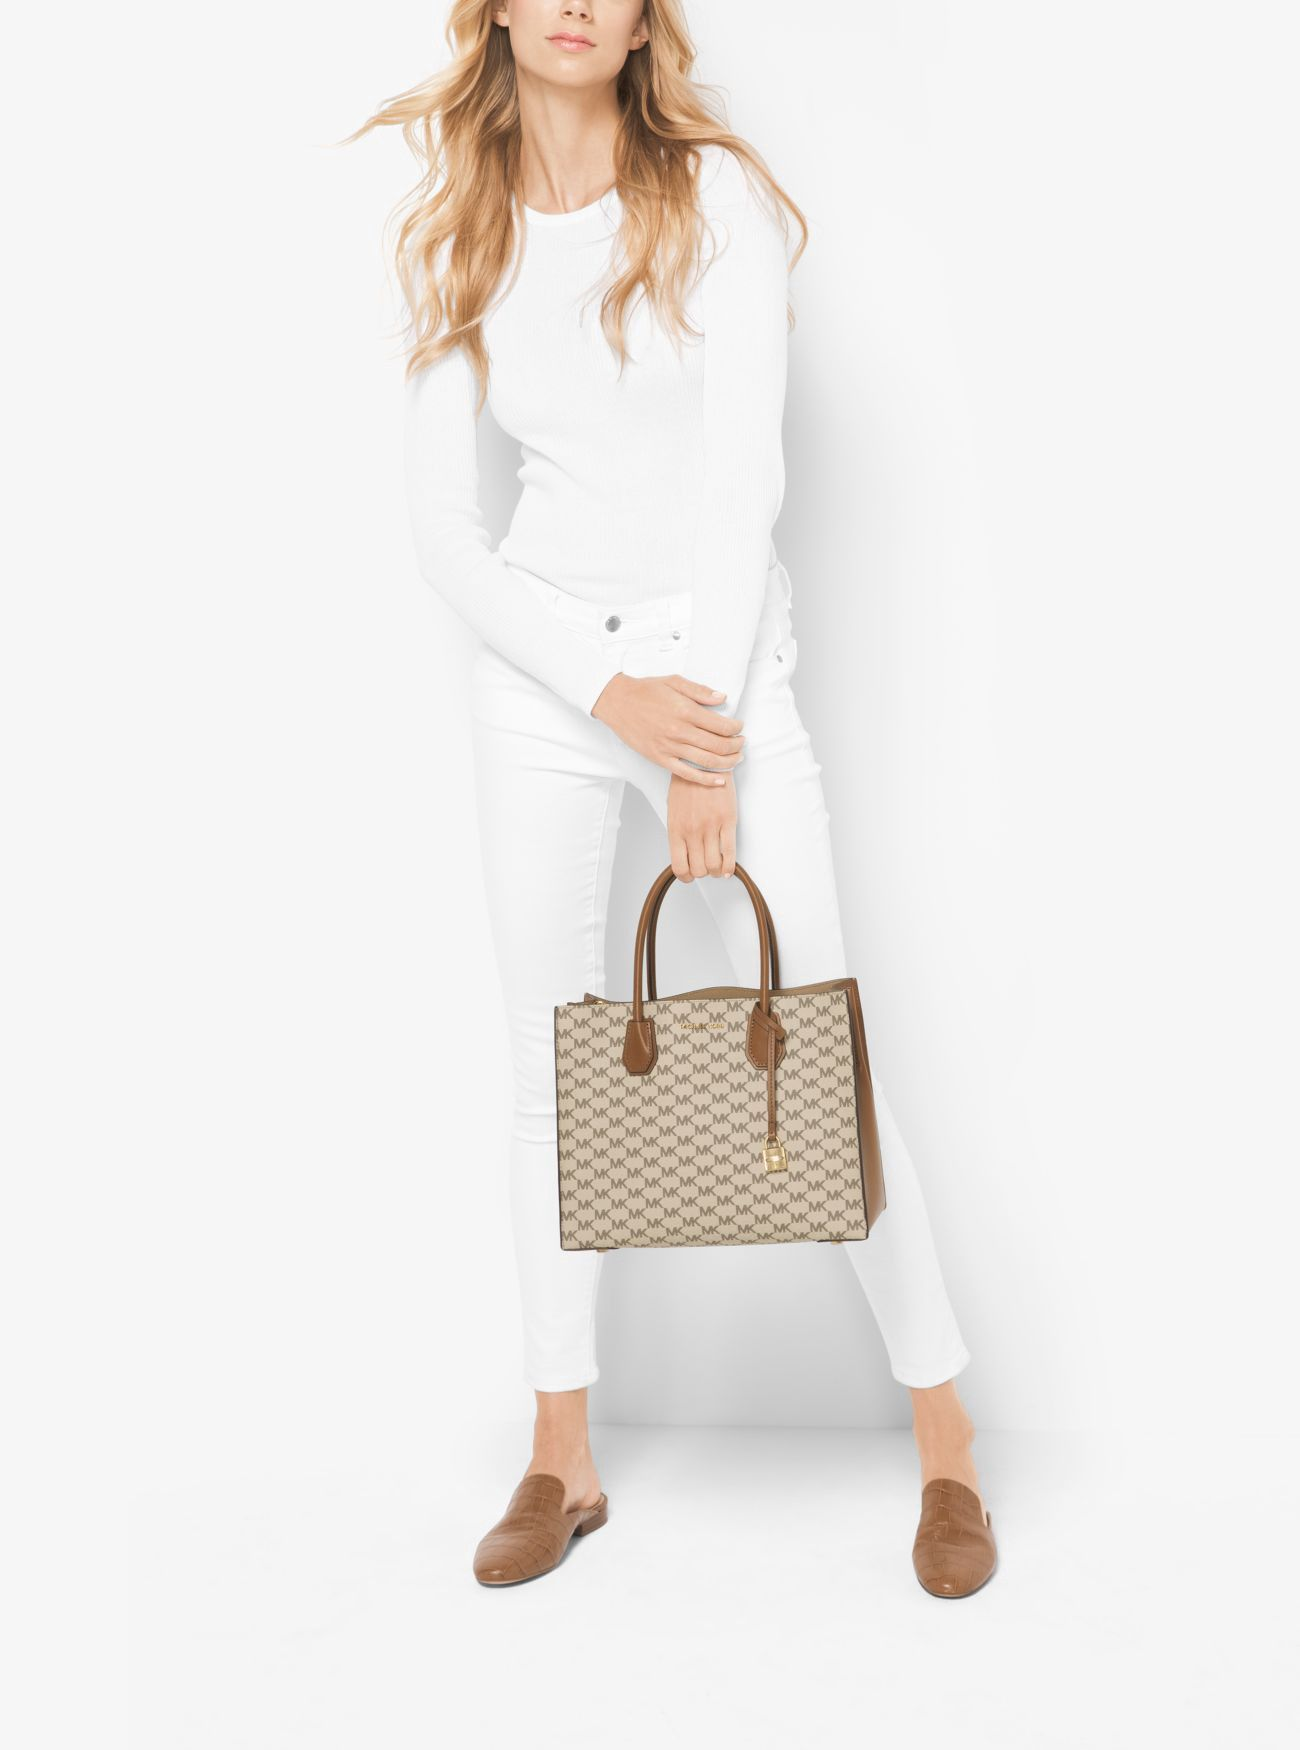 eff11b2407f1 MICHAEL KORS Mercer Large Heritage Signature Tote.  michaelkors  bags   canvas  tote  lining  polyester  shoulder bags  hand bags